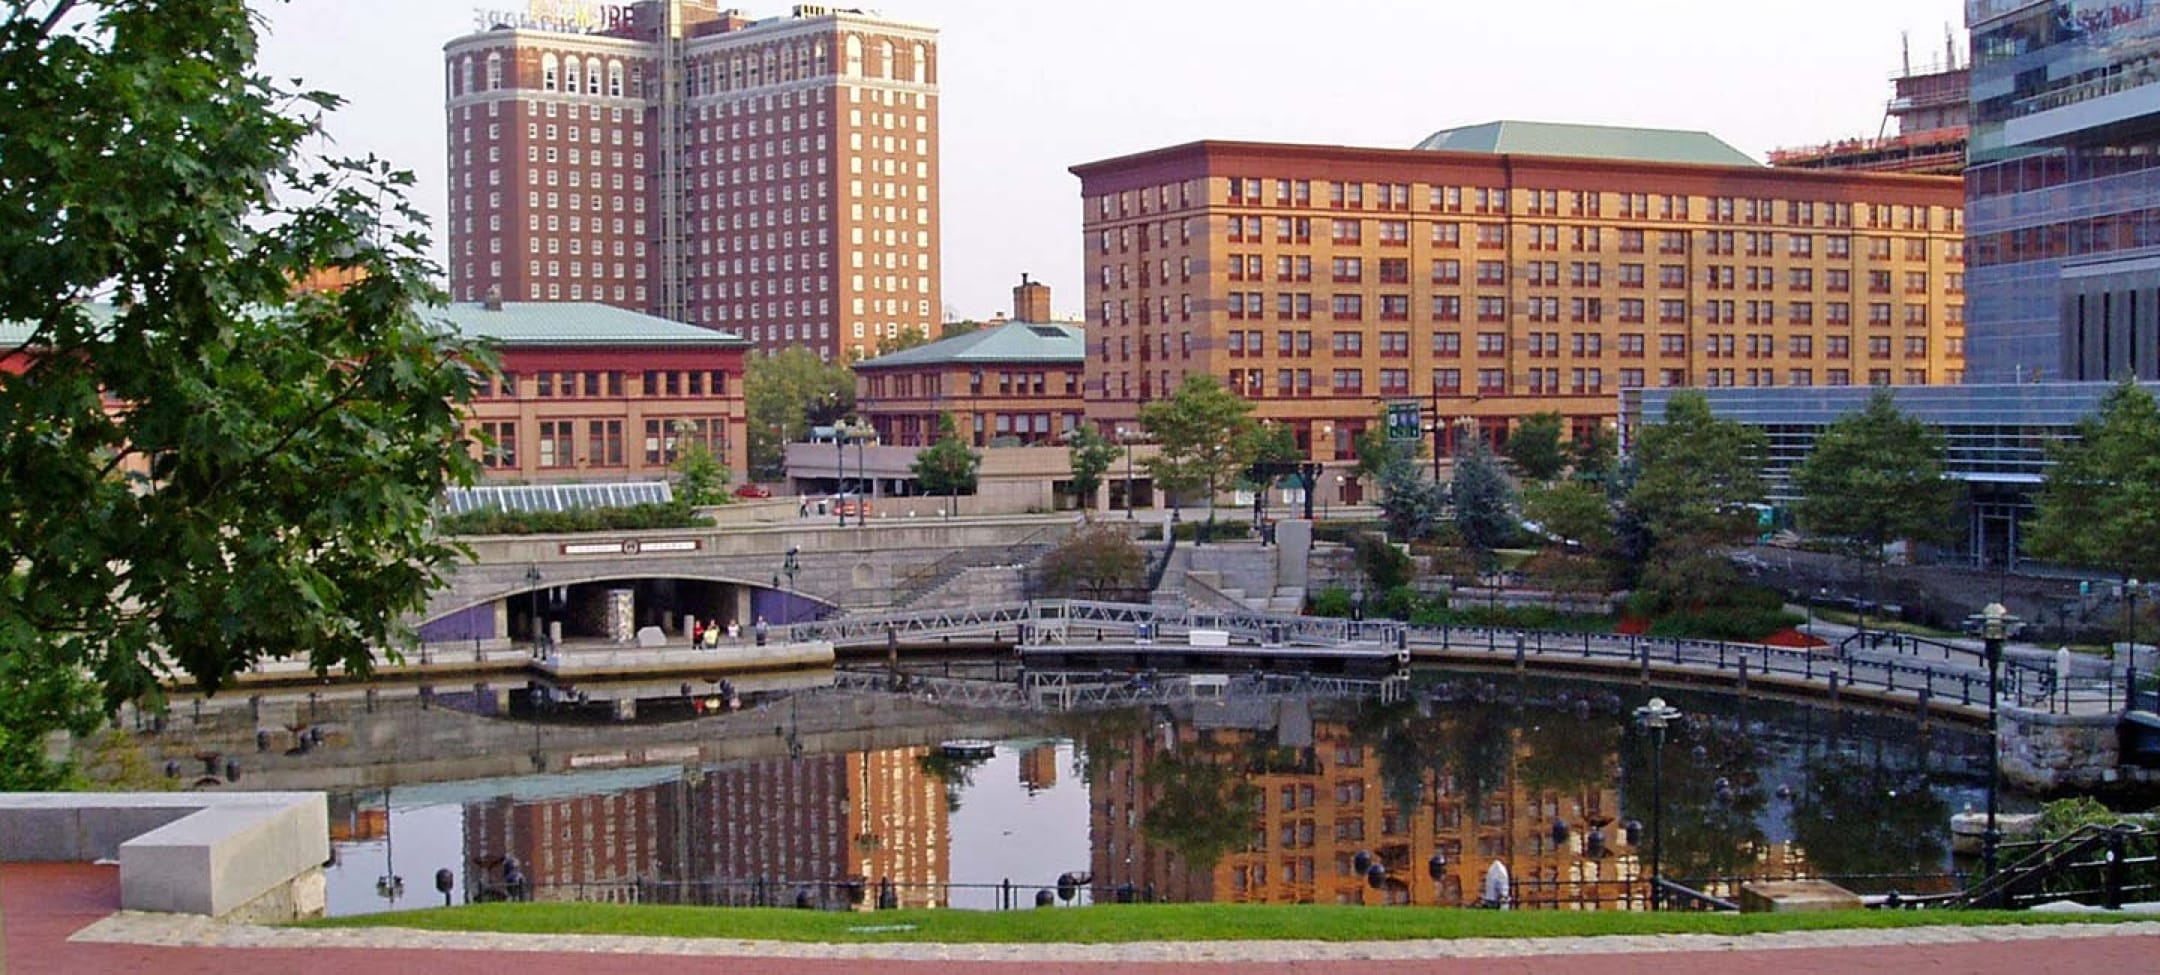 Waterplace park in Providence